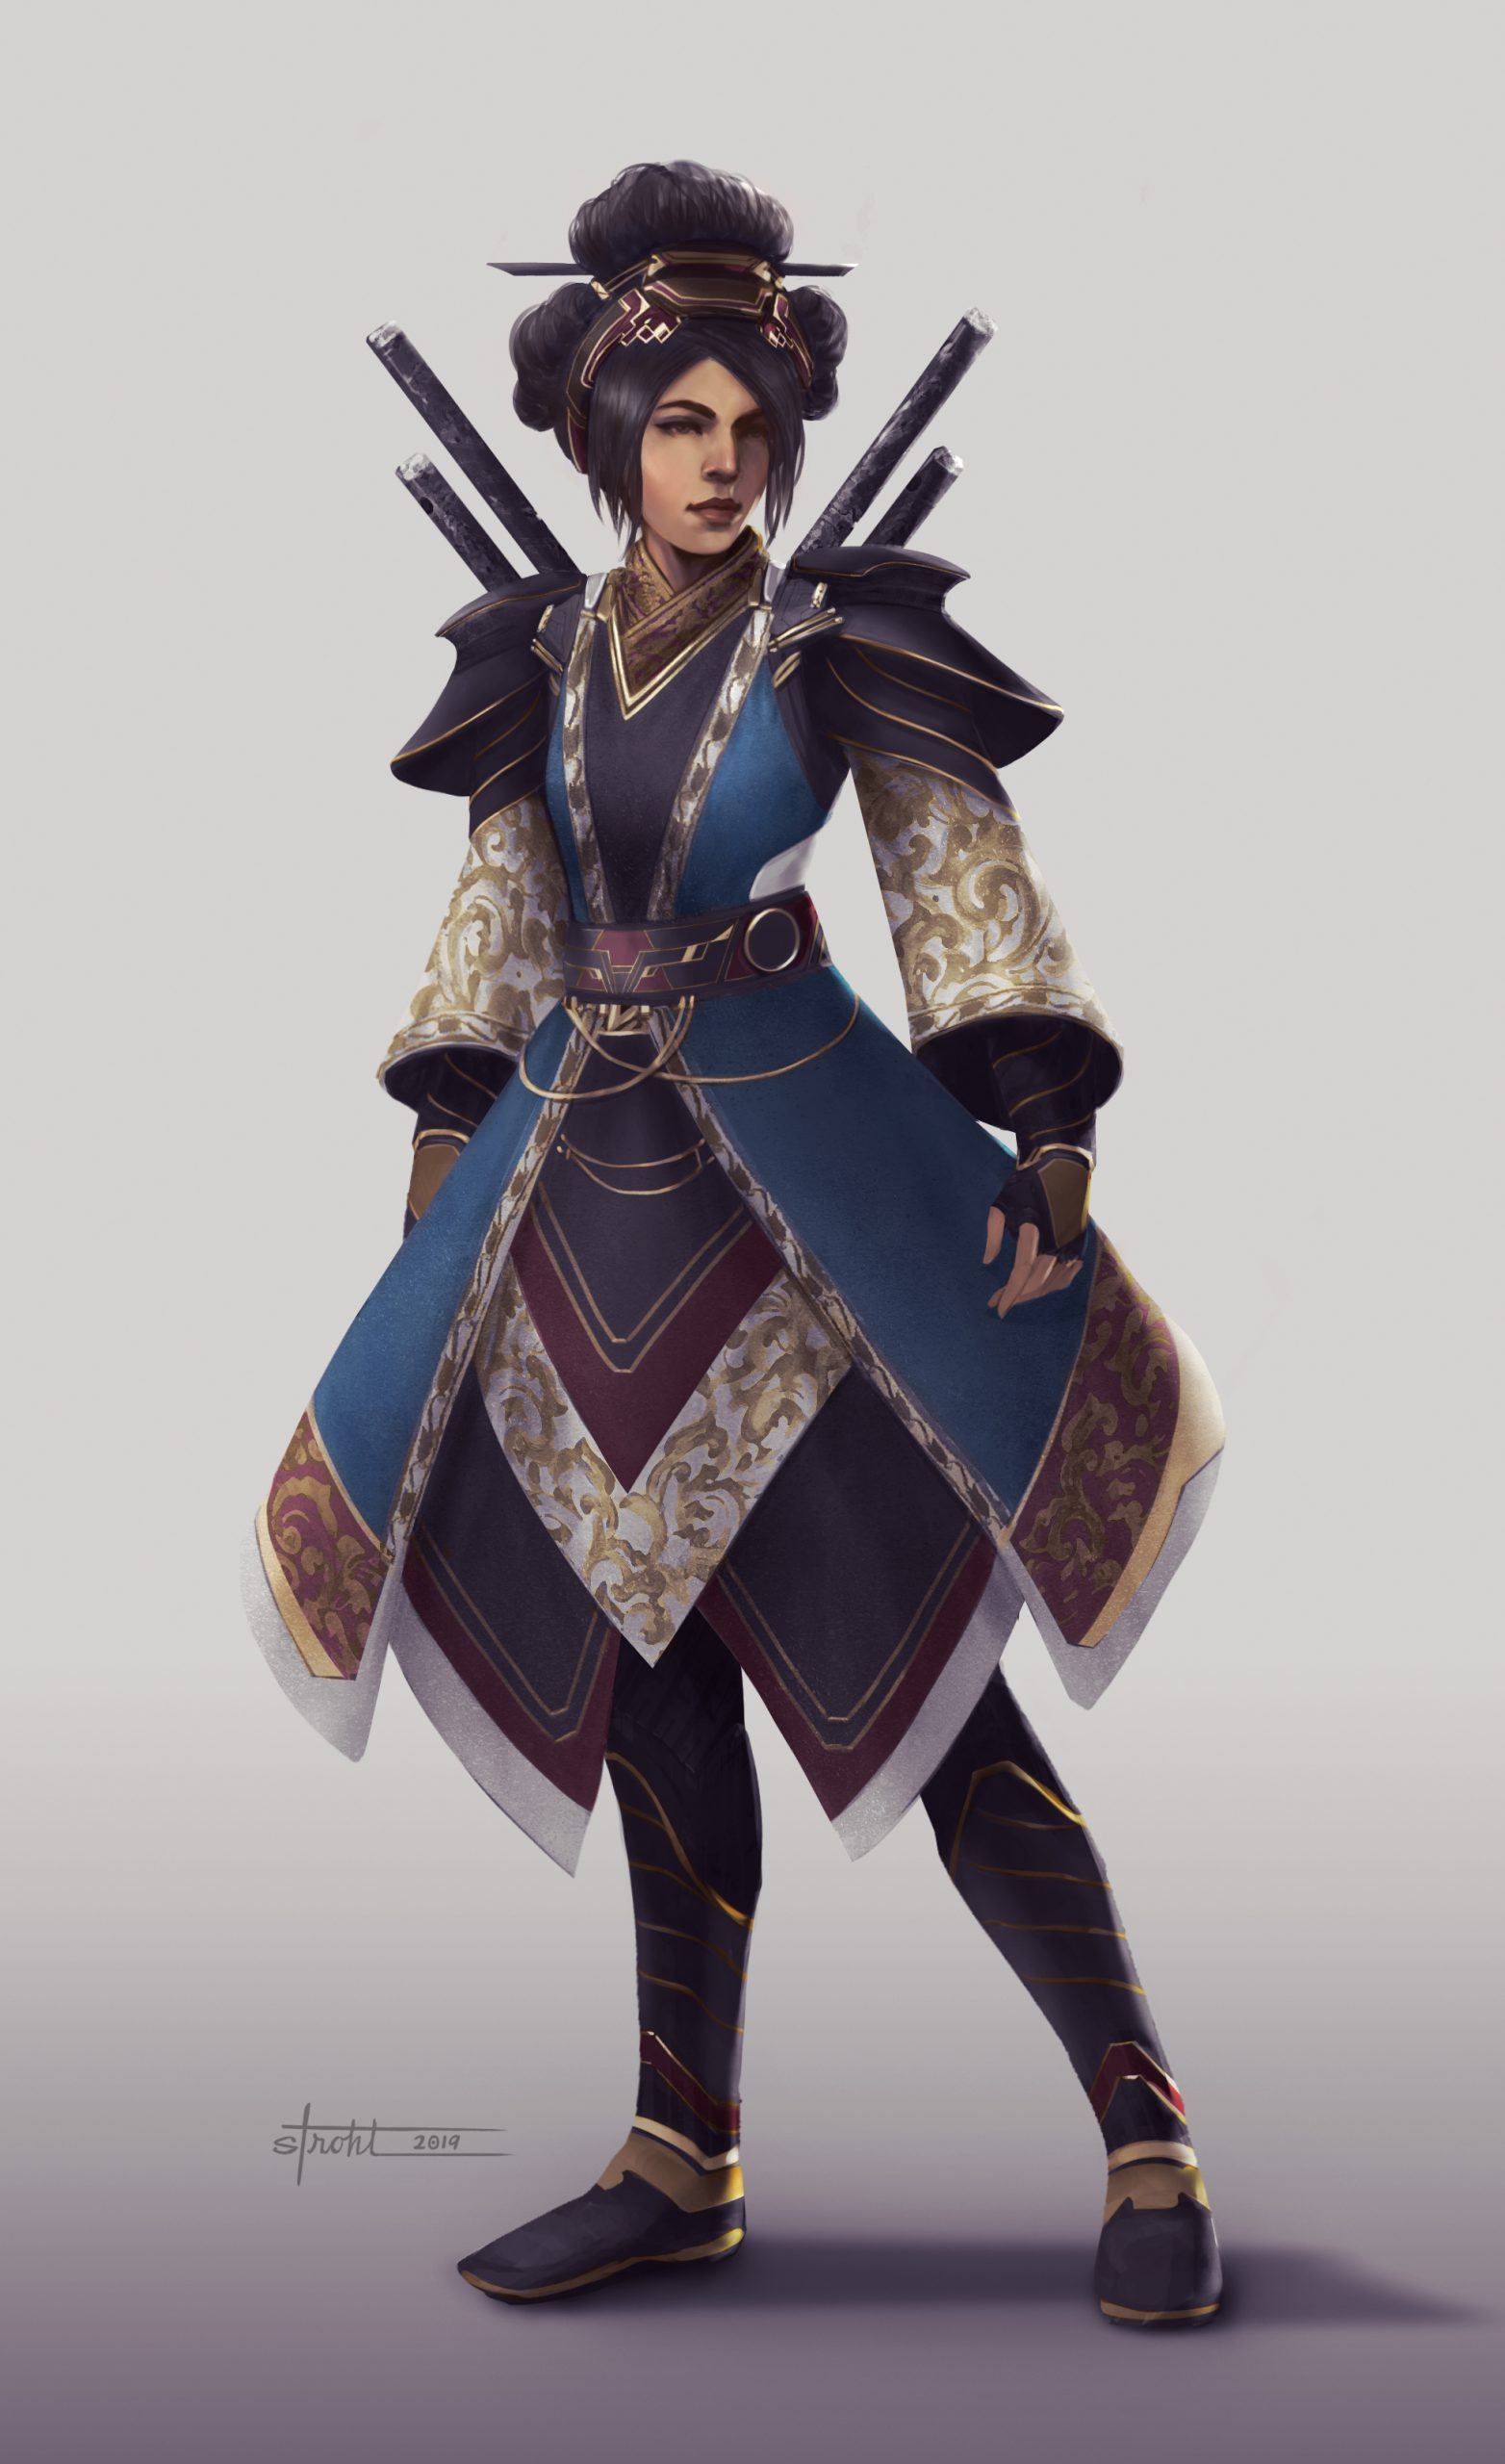 Battle Royale Character 1 by Jessica Strohl